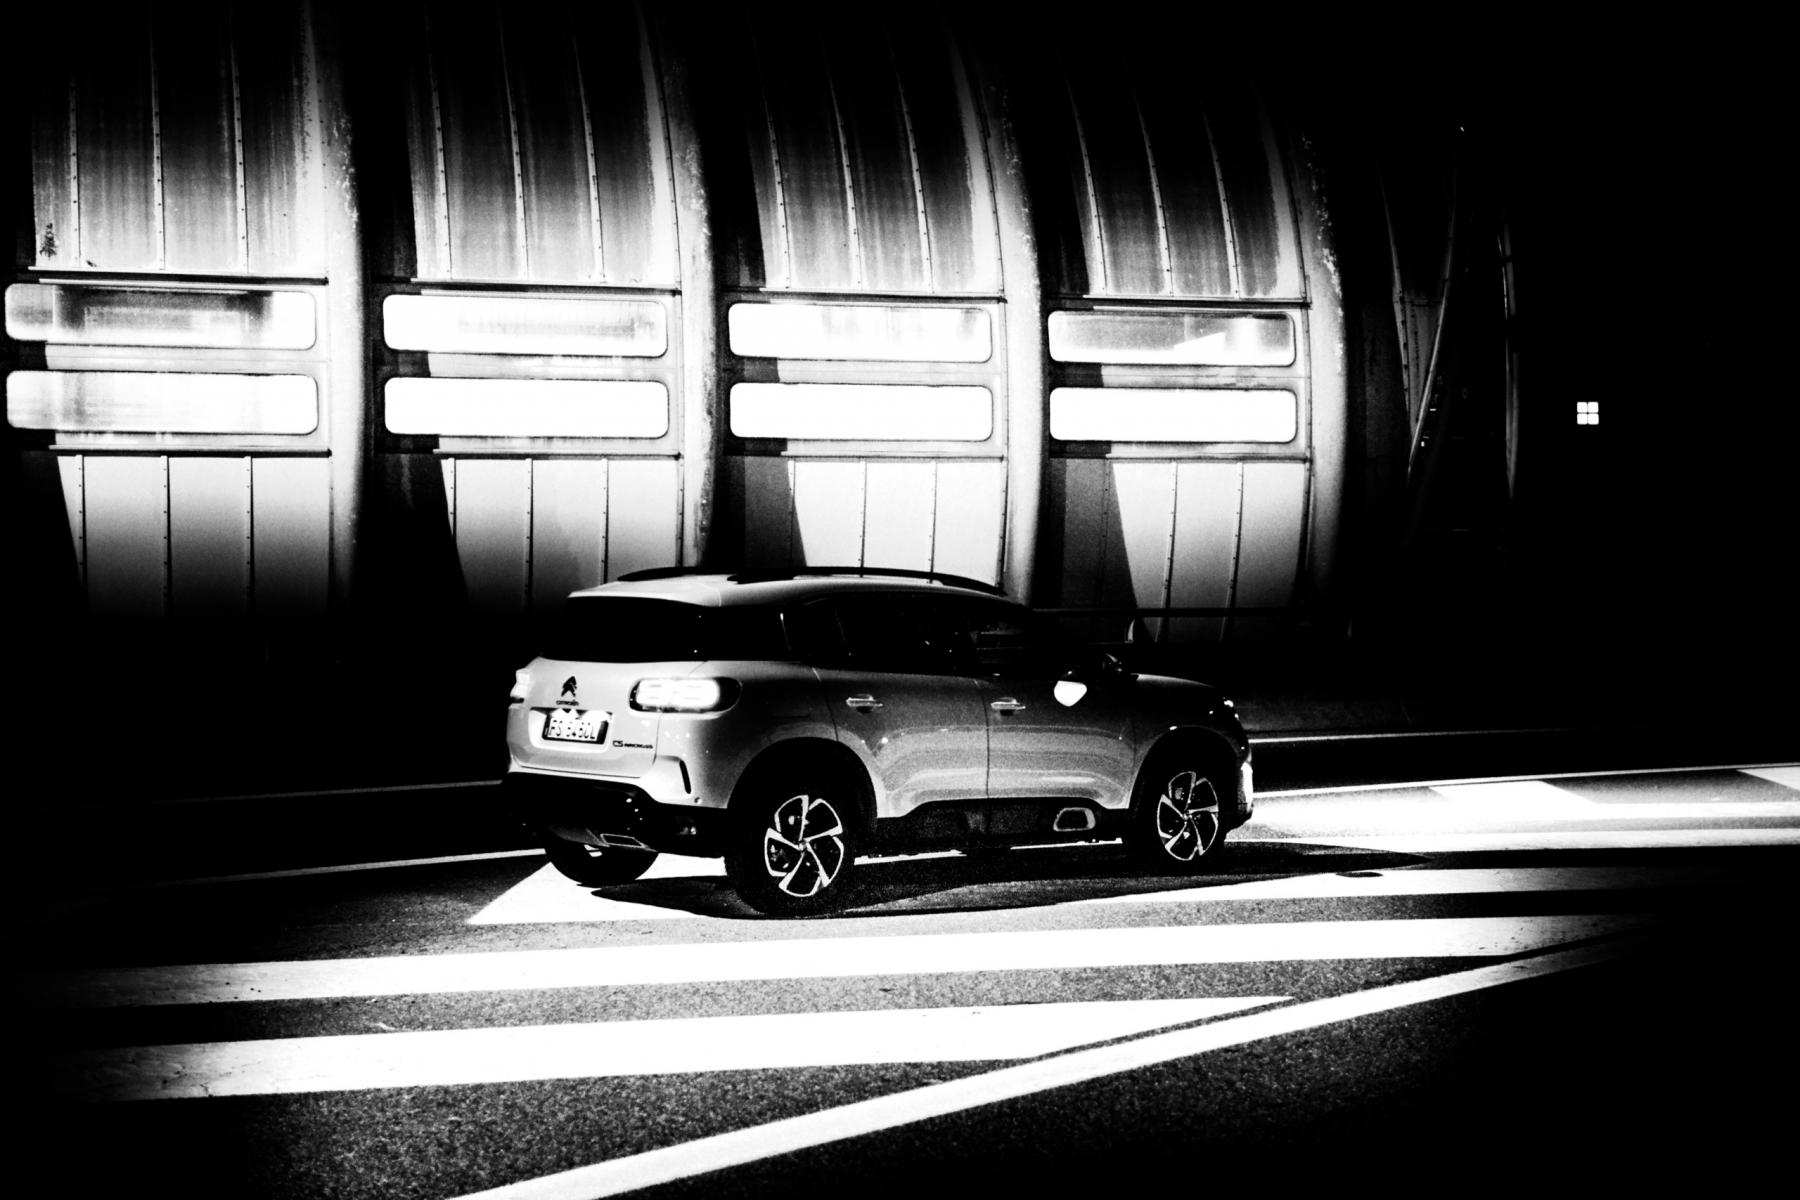 LR5_EDIT-EXPORT_CITROEN-C5-AIRCROSS_overall-53